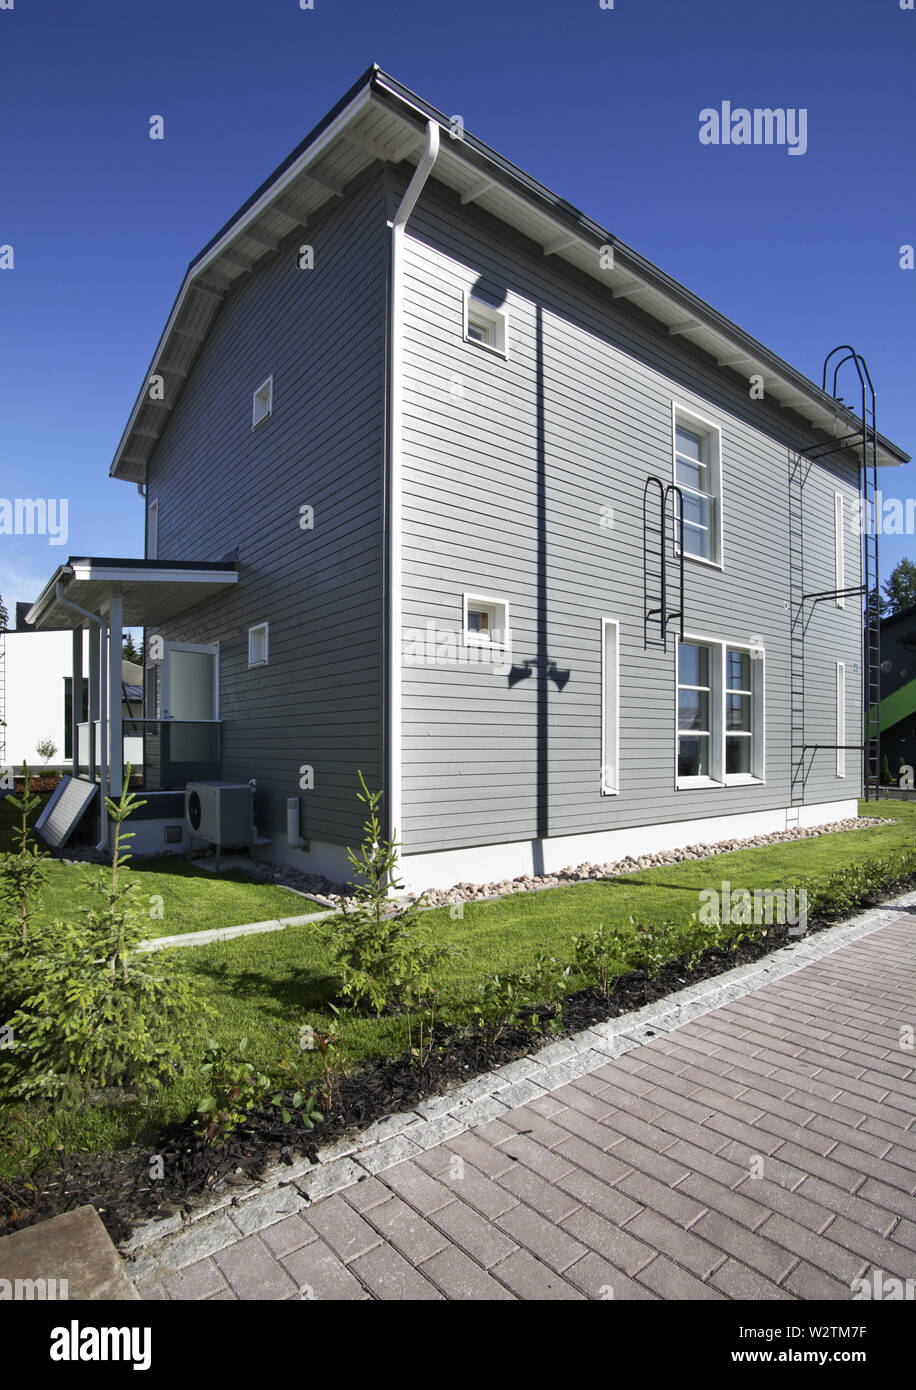 House 15 at exhibition Asuntomessut 2012 in Tampere. Finland - Stock Image